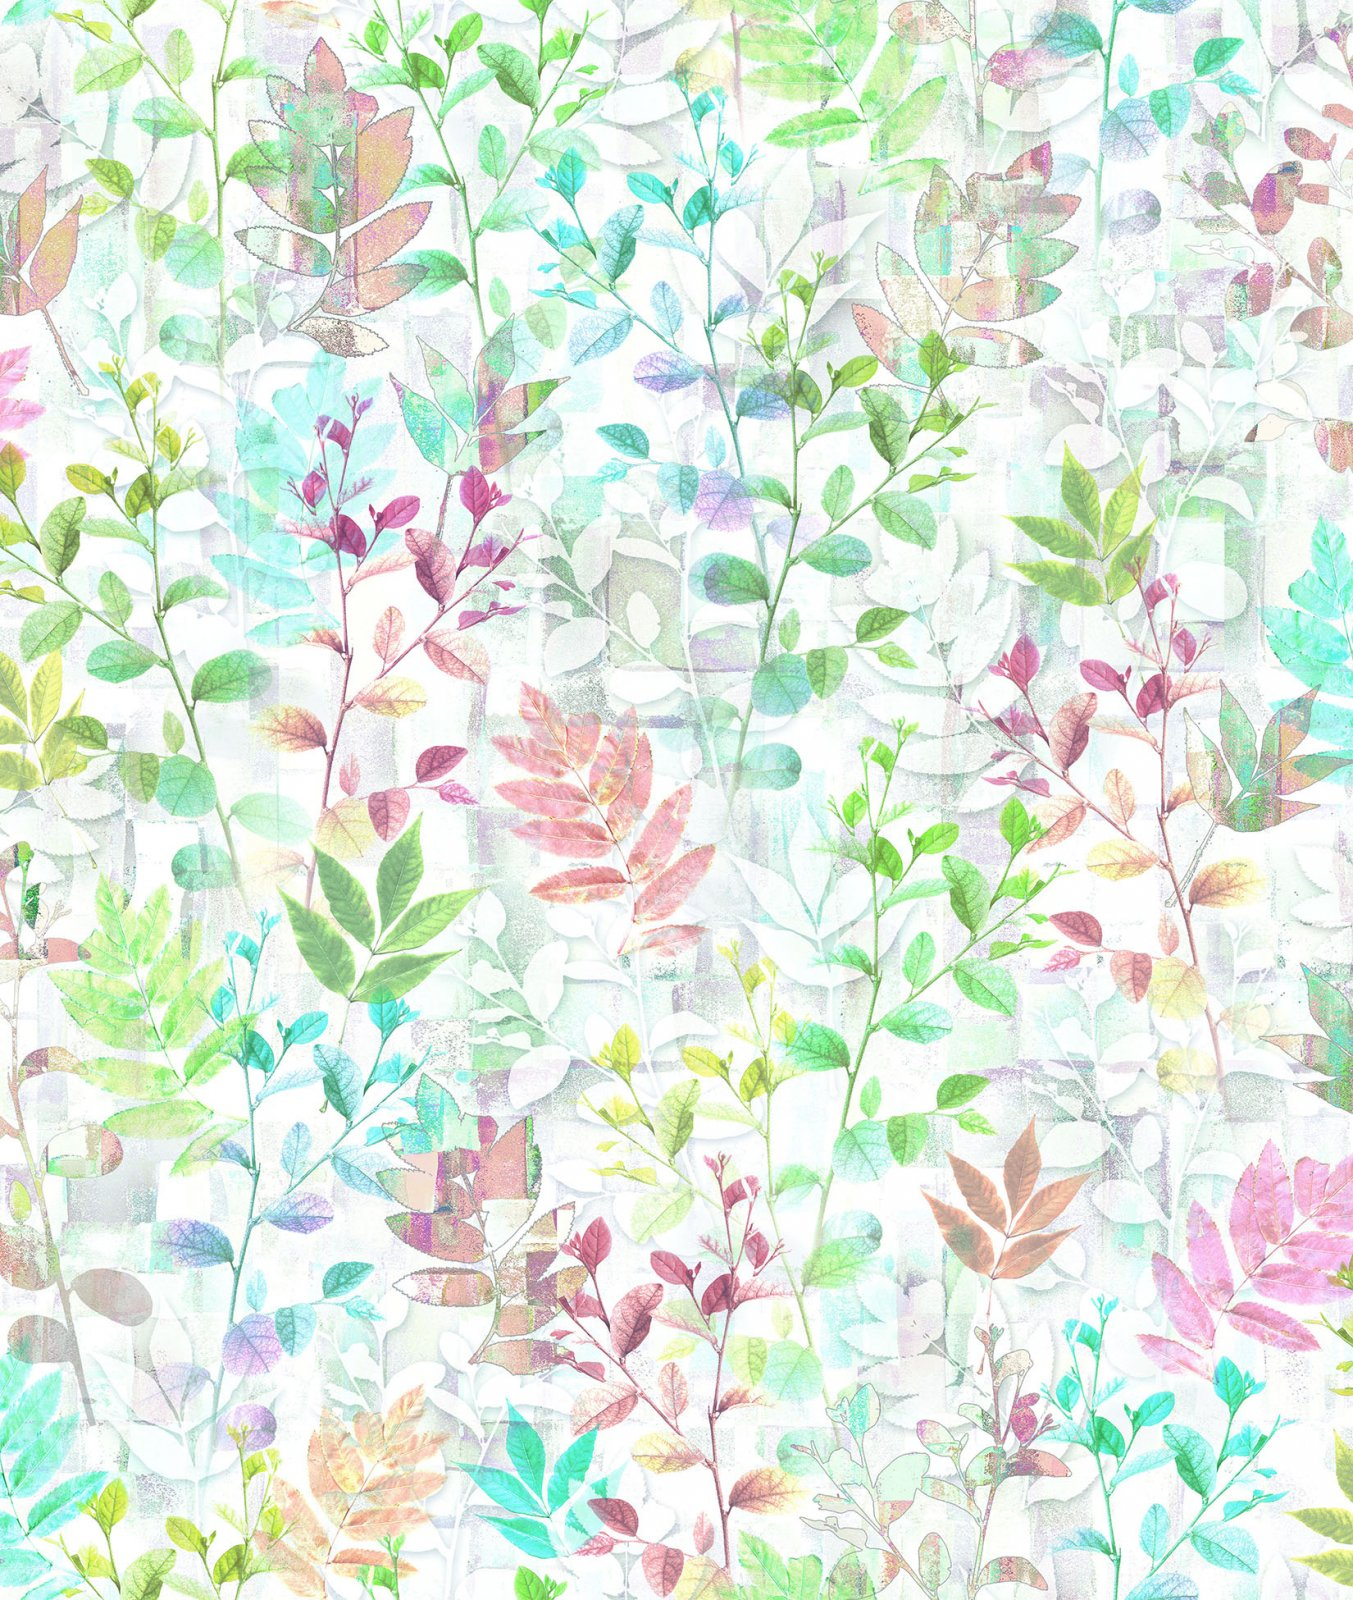 RJR Digital Fabric - Luminous Leaves - 3273-001